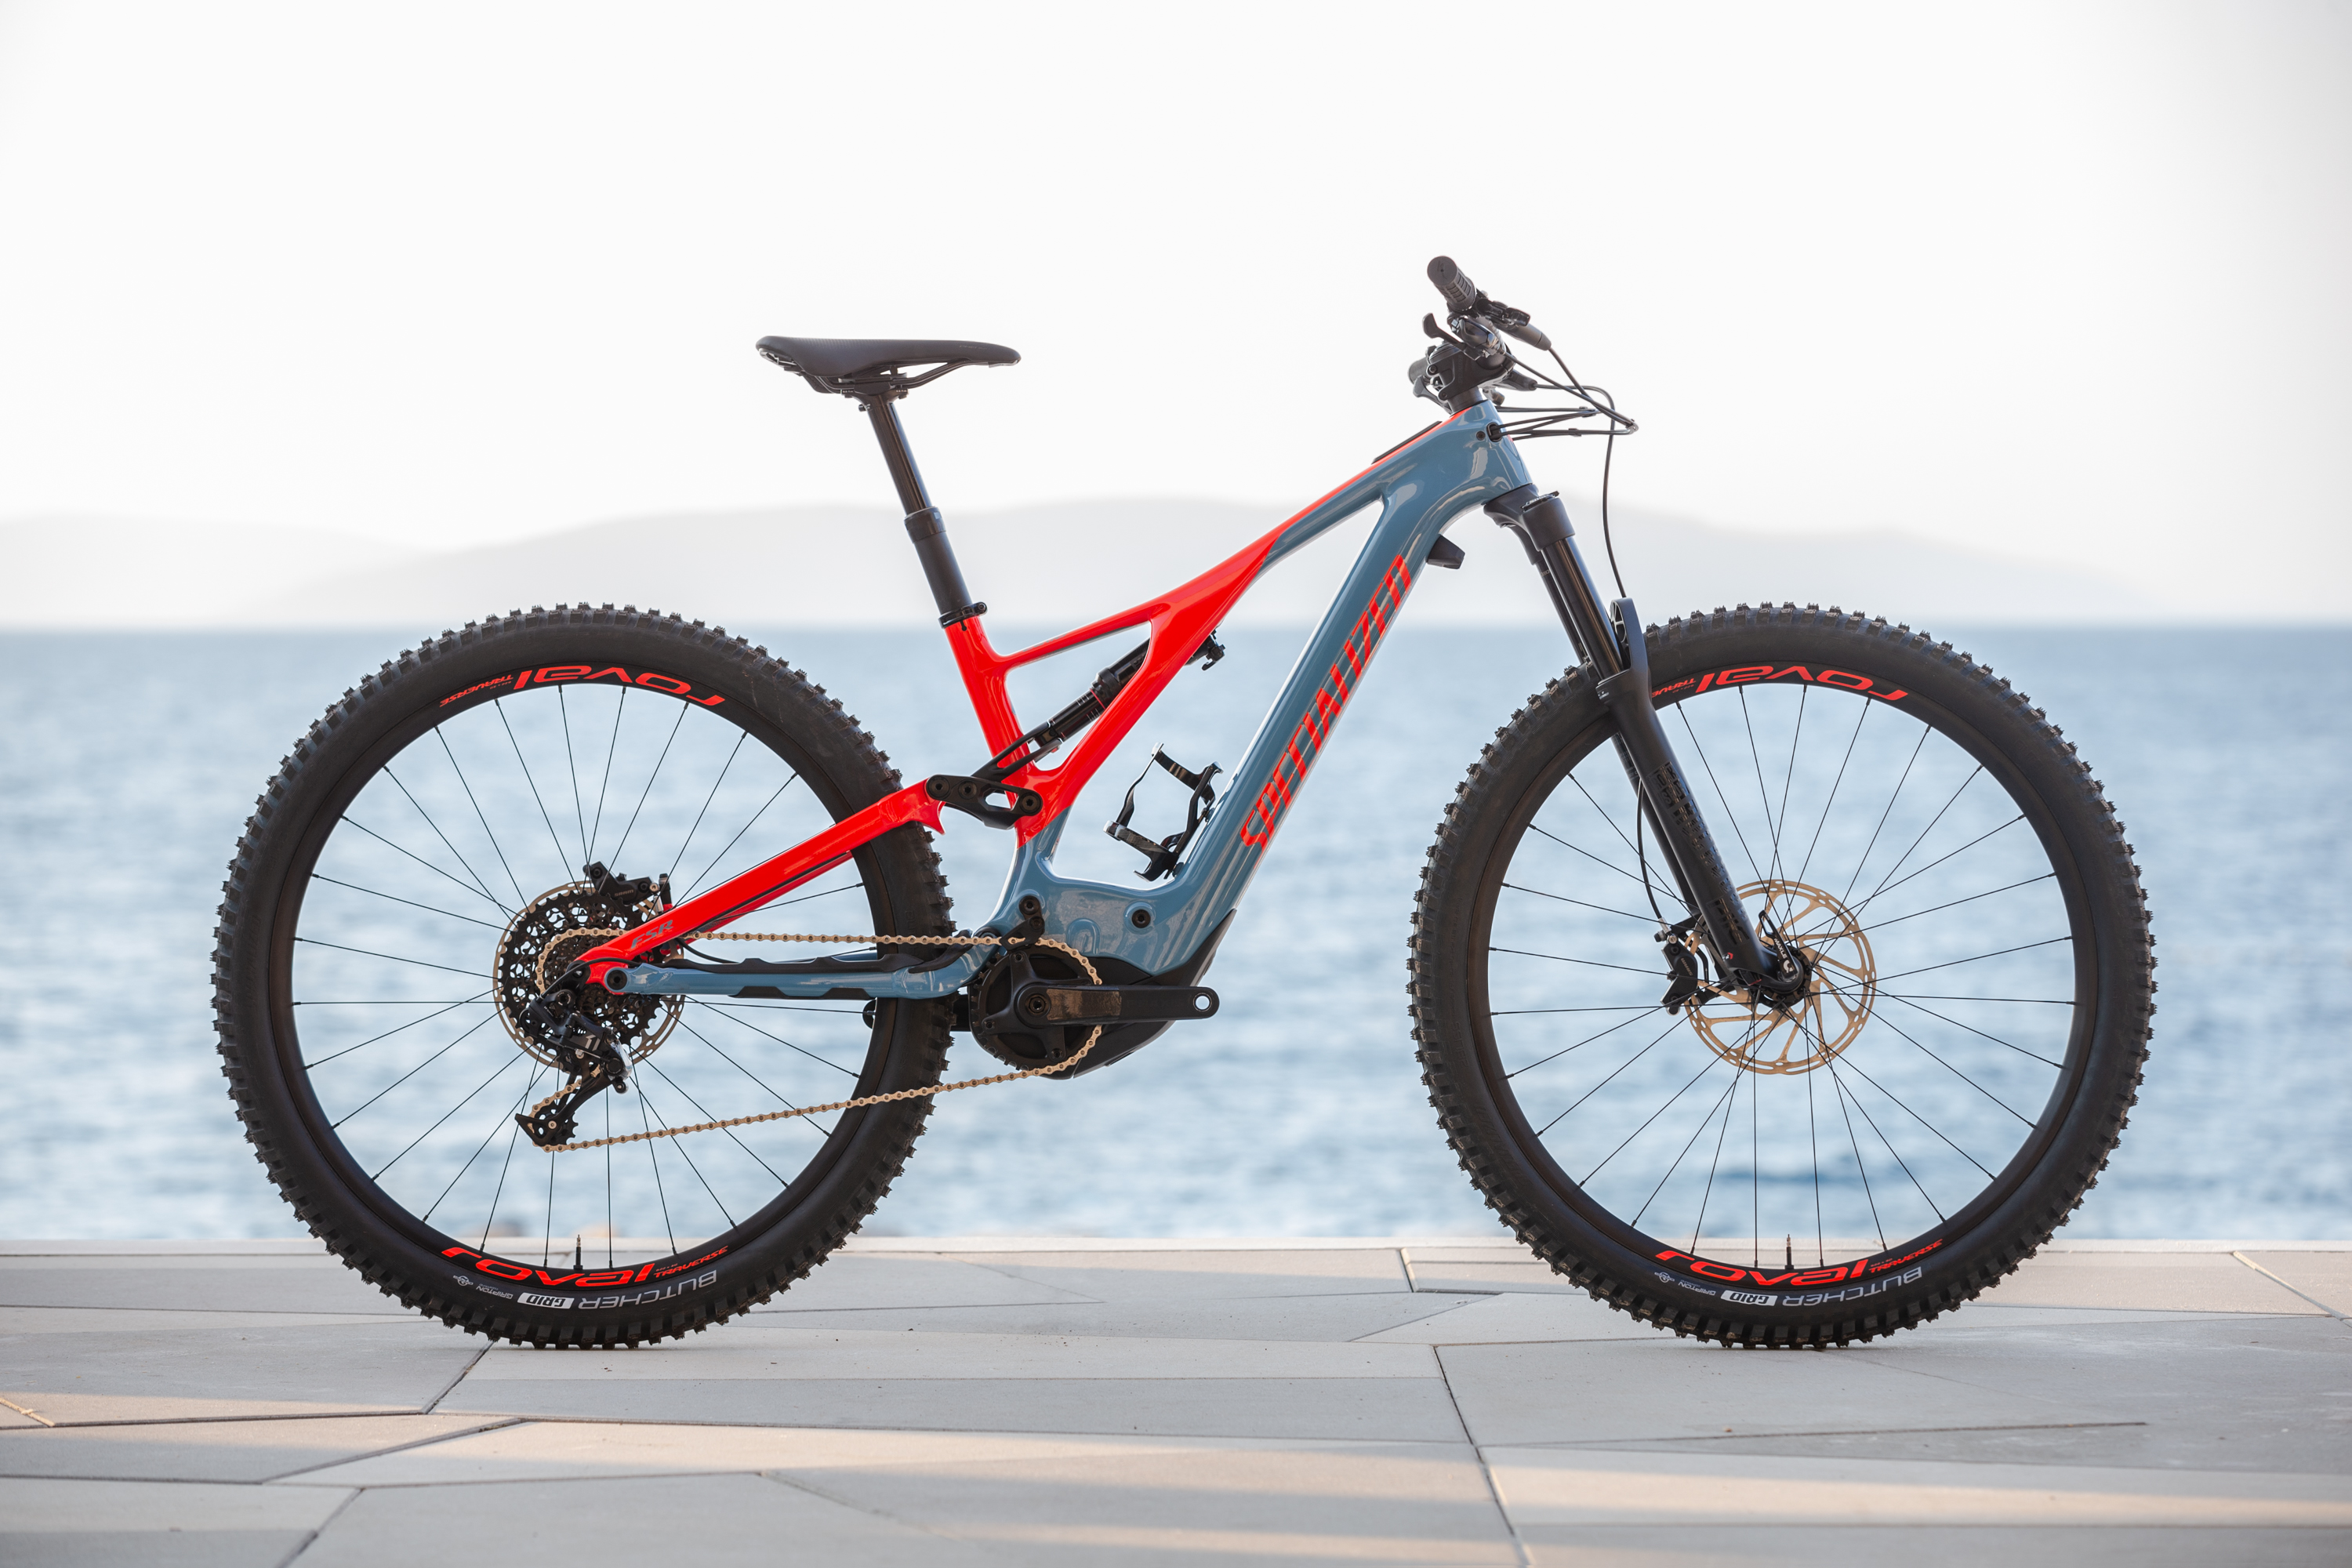 Specialized recharges Turbo Levo e-MTB w/ added range, power, less weight, more